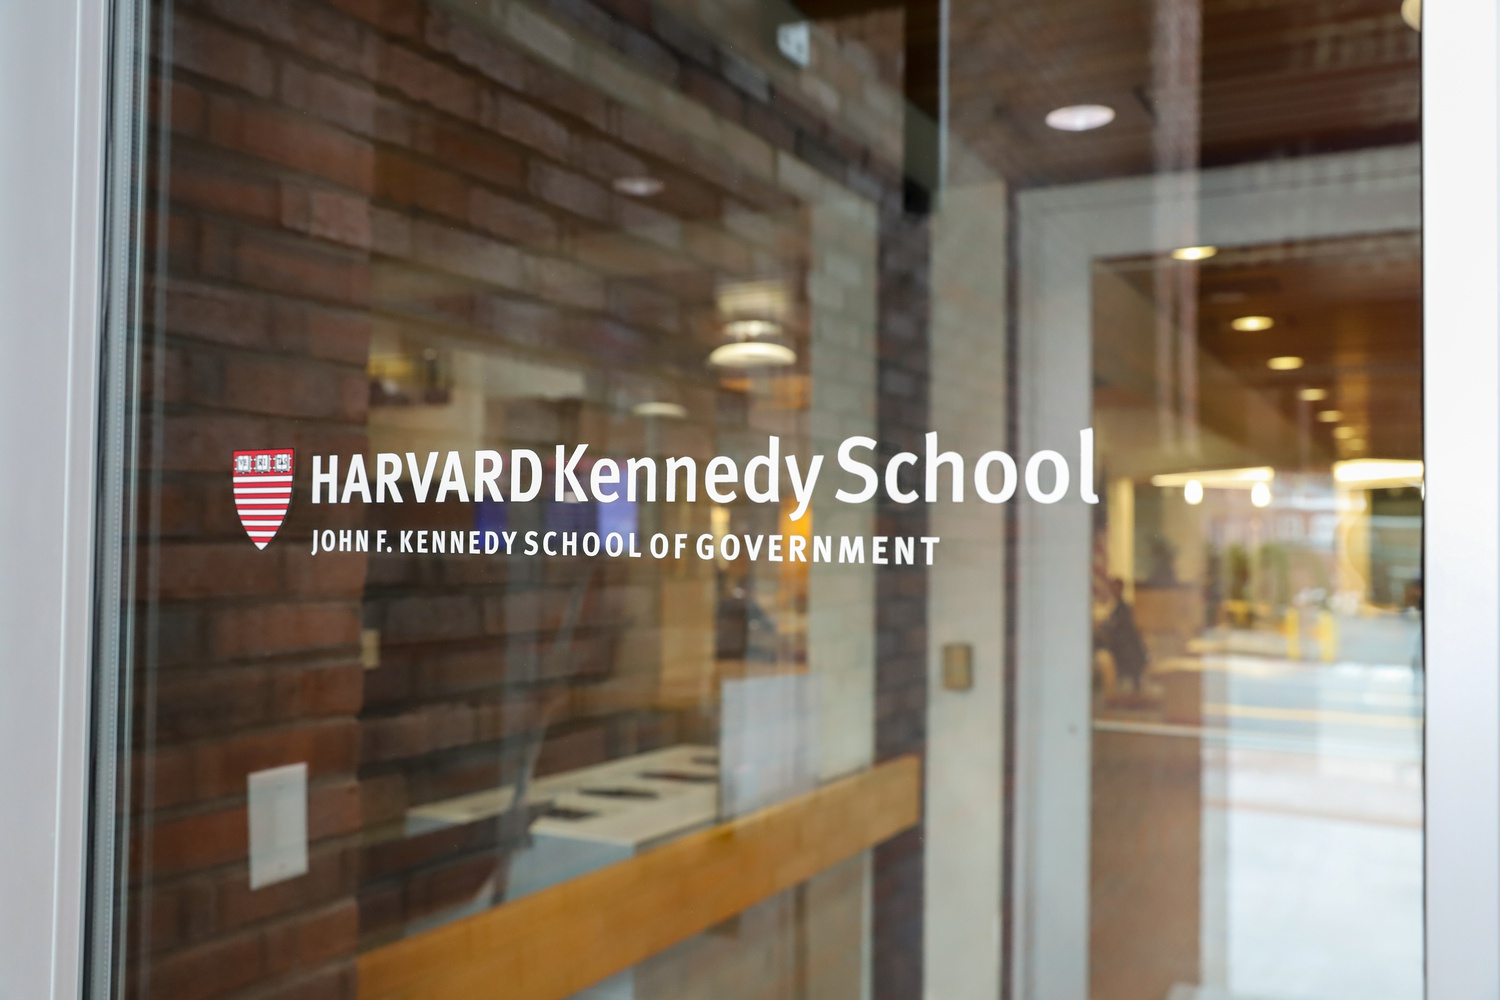 The Kennedy School announced Wednesday that it plans to offer a hybrid of in-person and online classes for its students for the spring semester, prioritizing in-person class spots for students who do not currently hold U.S. visas.